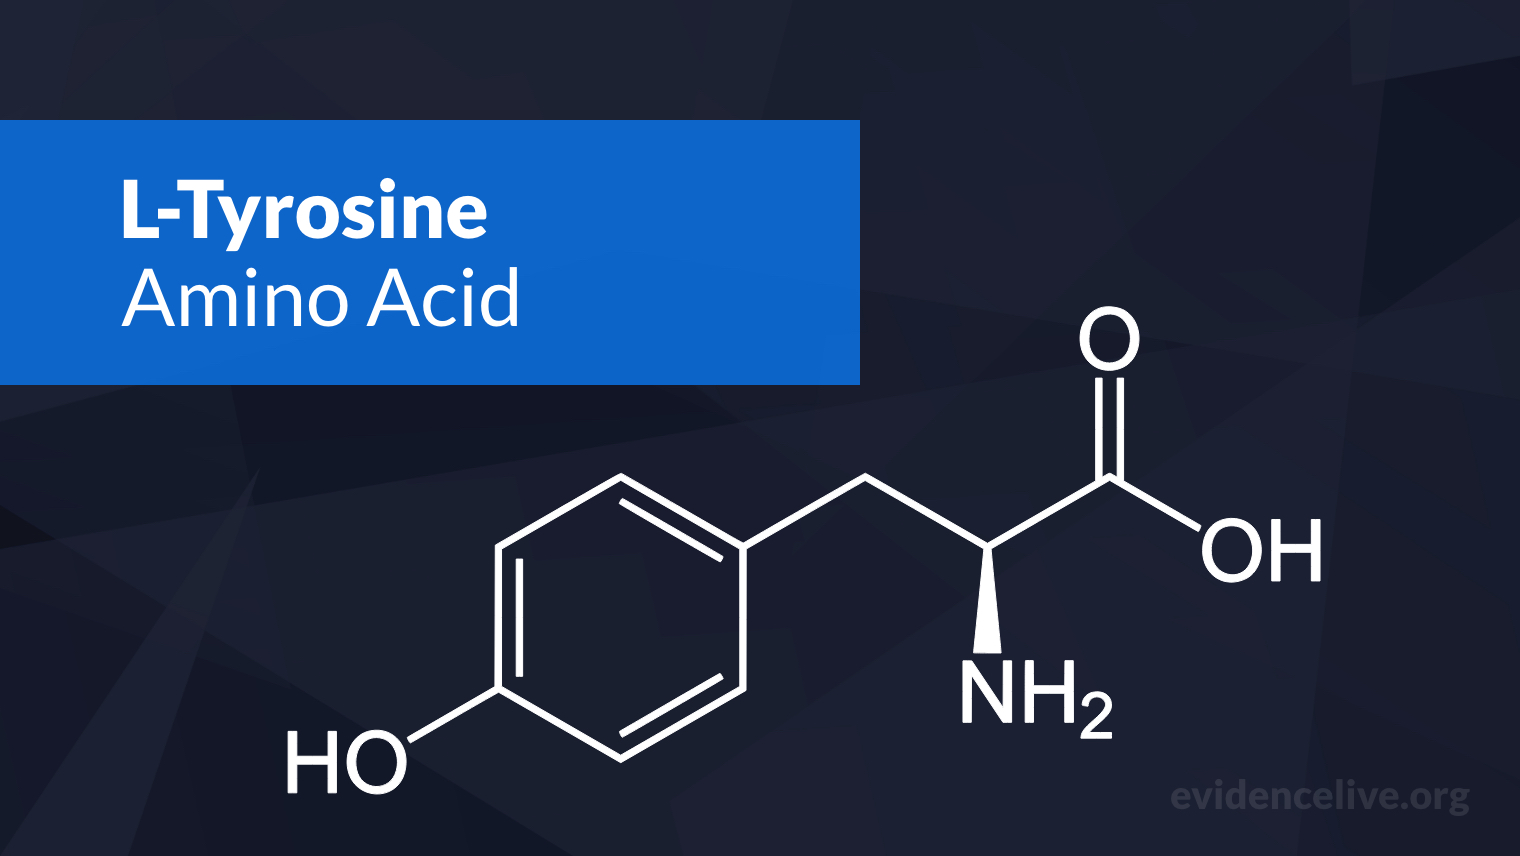 L-Tyrosine Benefits: What Is The Amino Acid Good For?